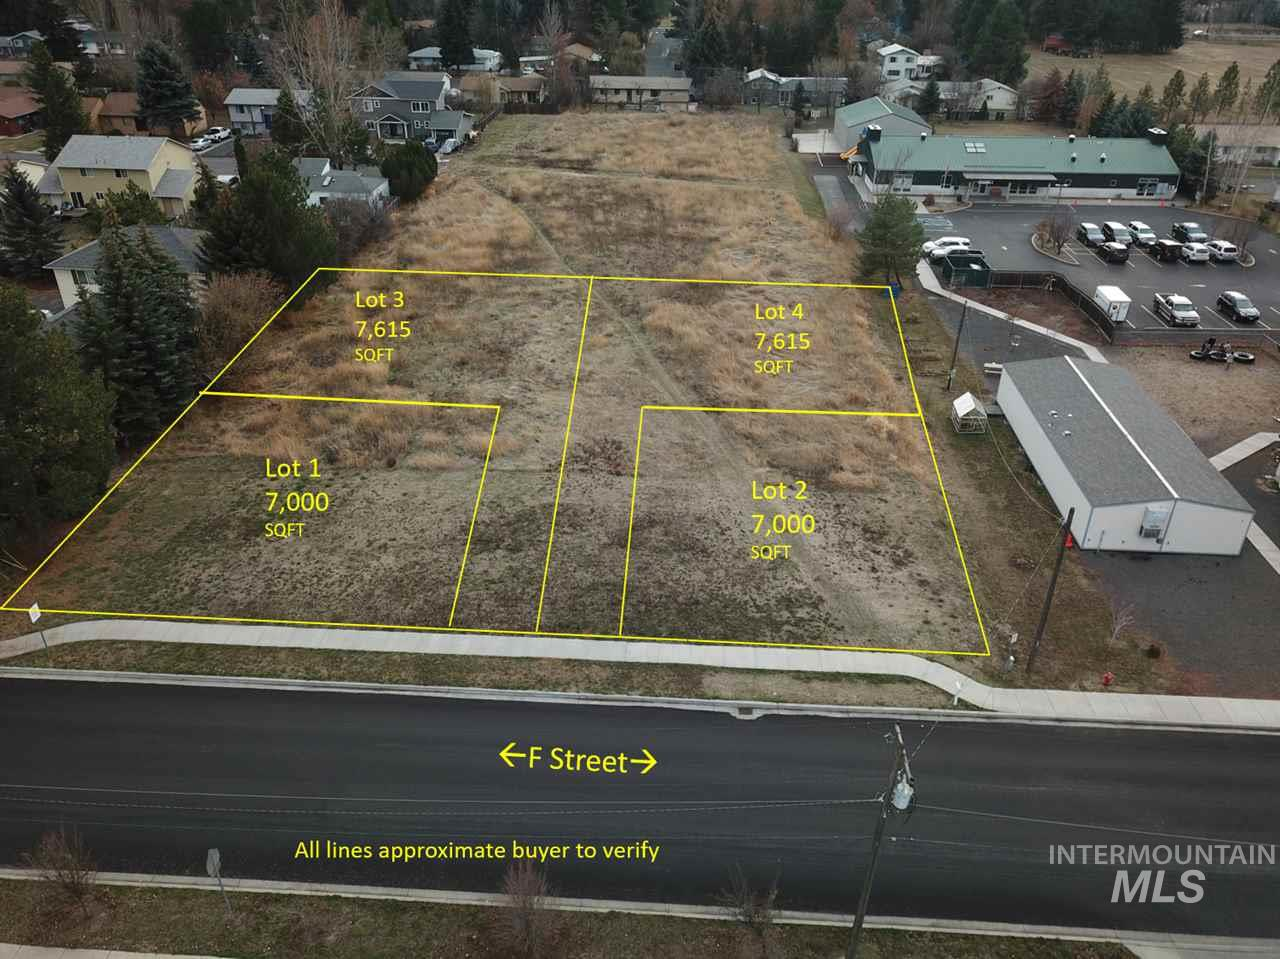 000 F Street Parcel #1, Moscow, Idaho 83843, Land For Sale, Price $77,000, 98718652